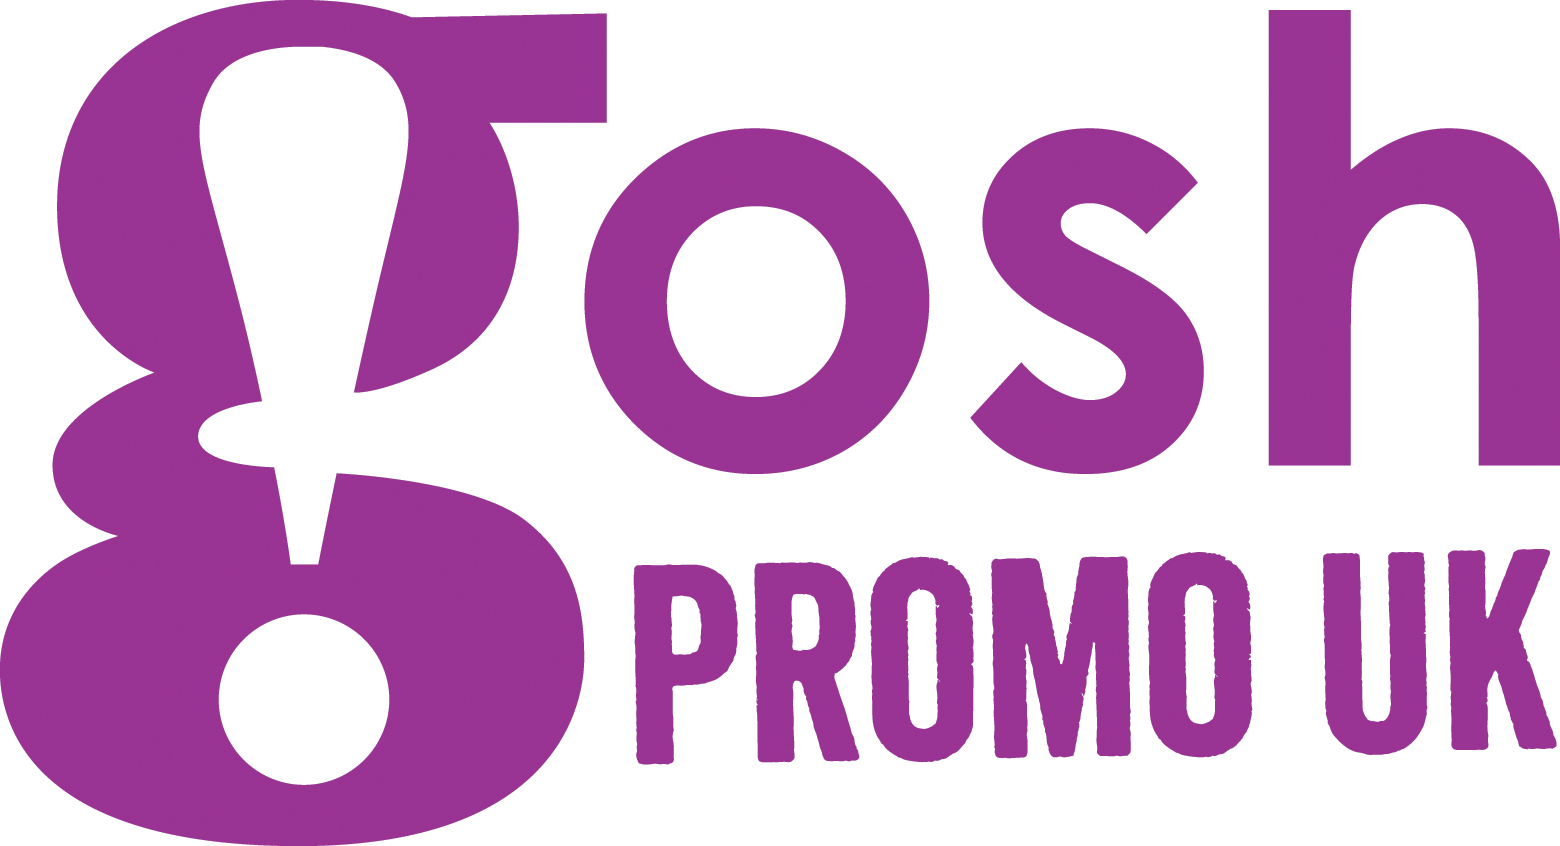 Gosh Promo UK joins The NC Group!